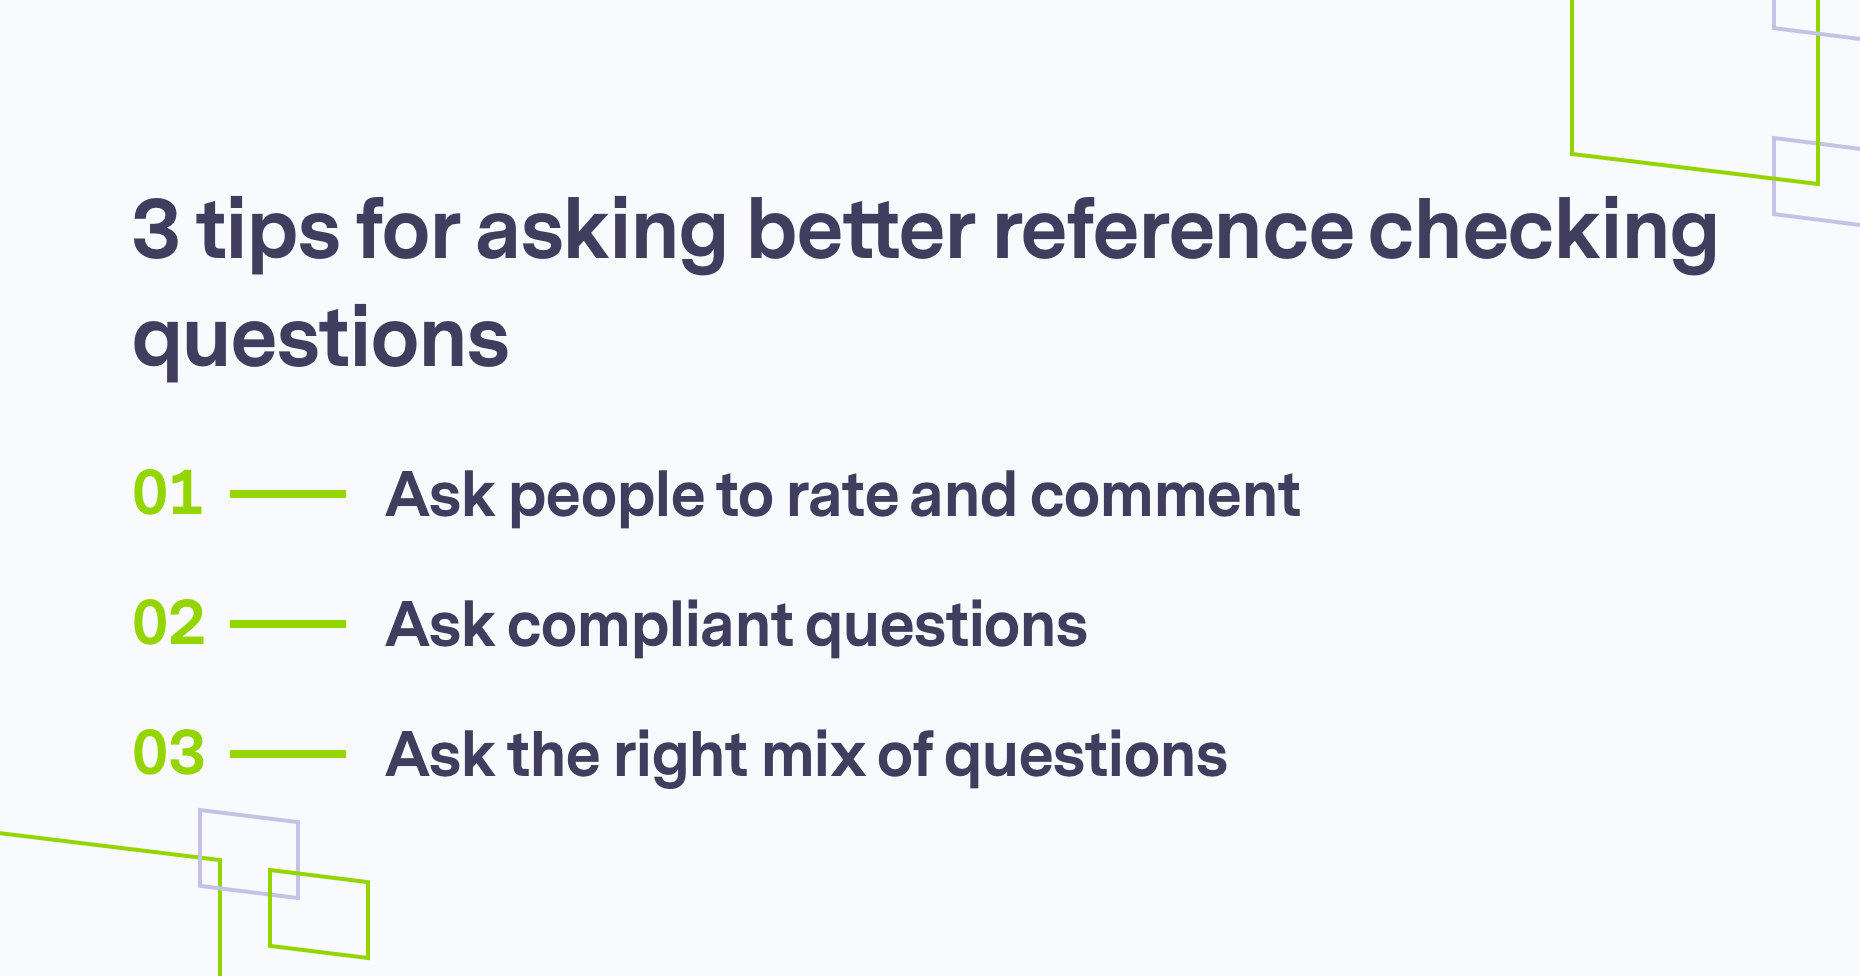 Tips for asking better reference checking questions